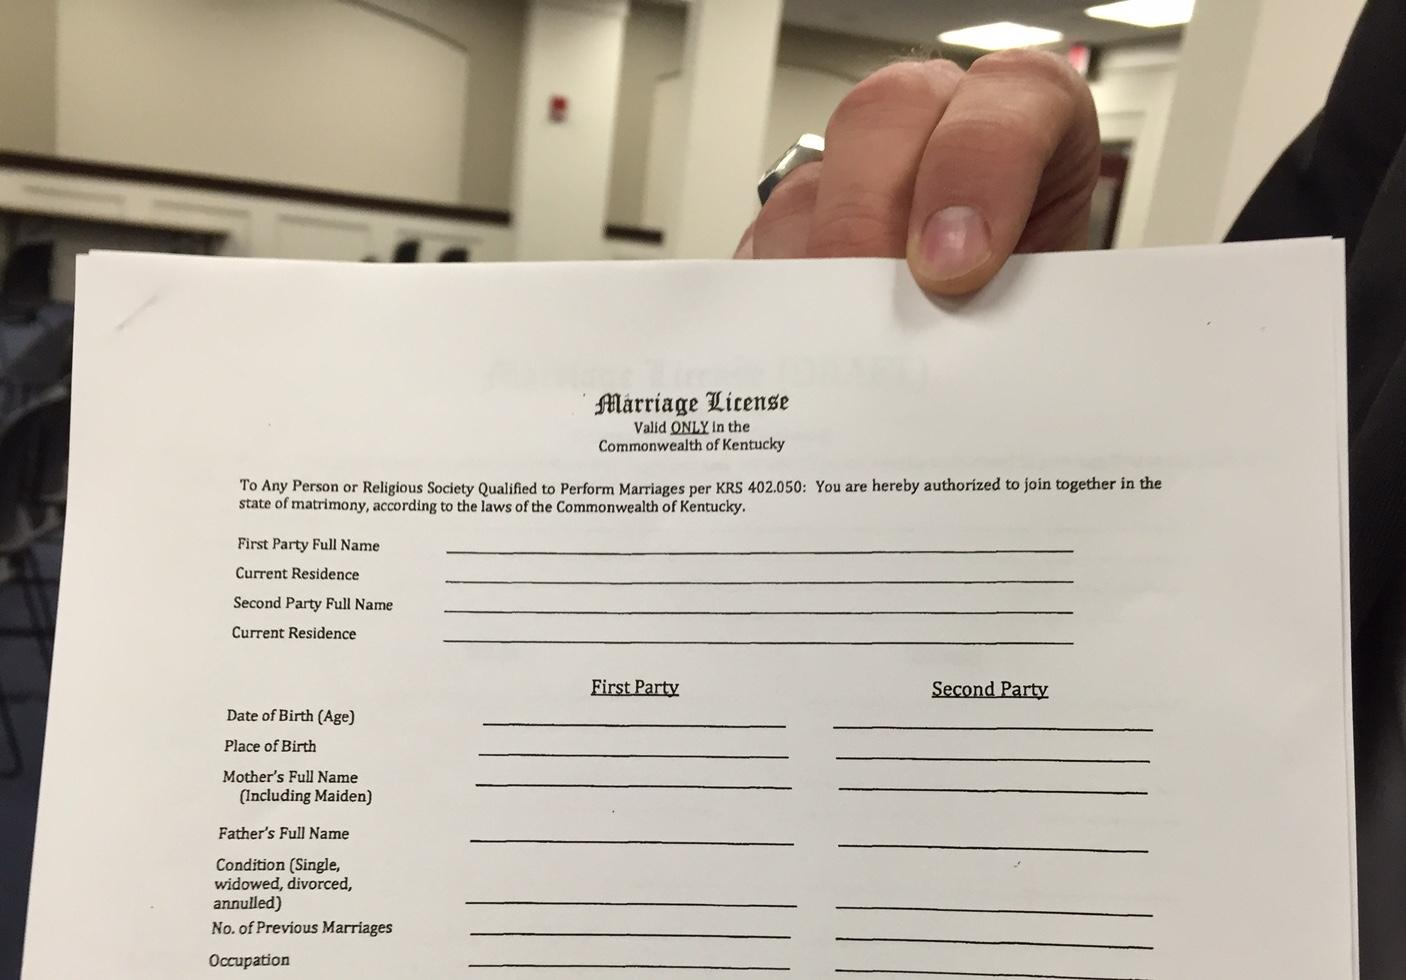 Kentucky considers two marriage license forms, one for gay marriage